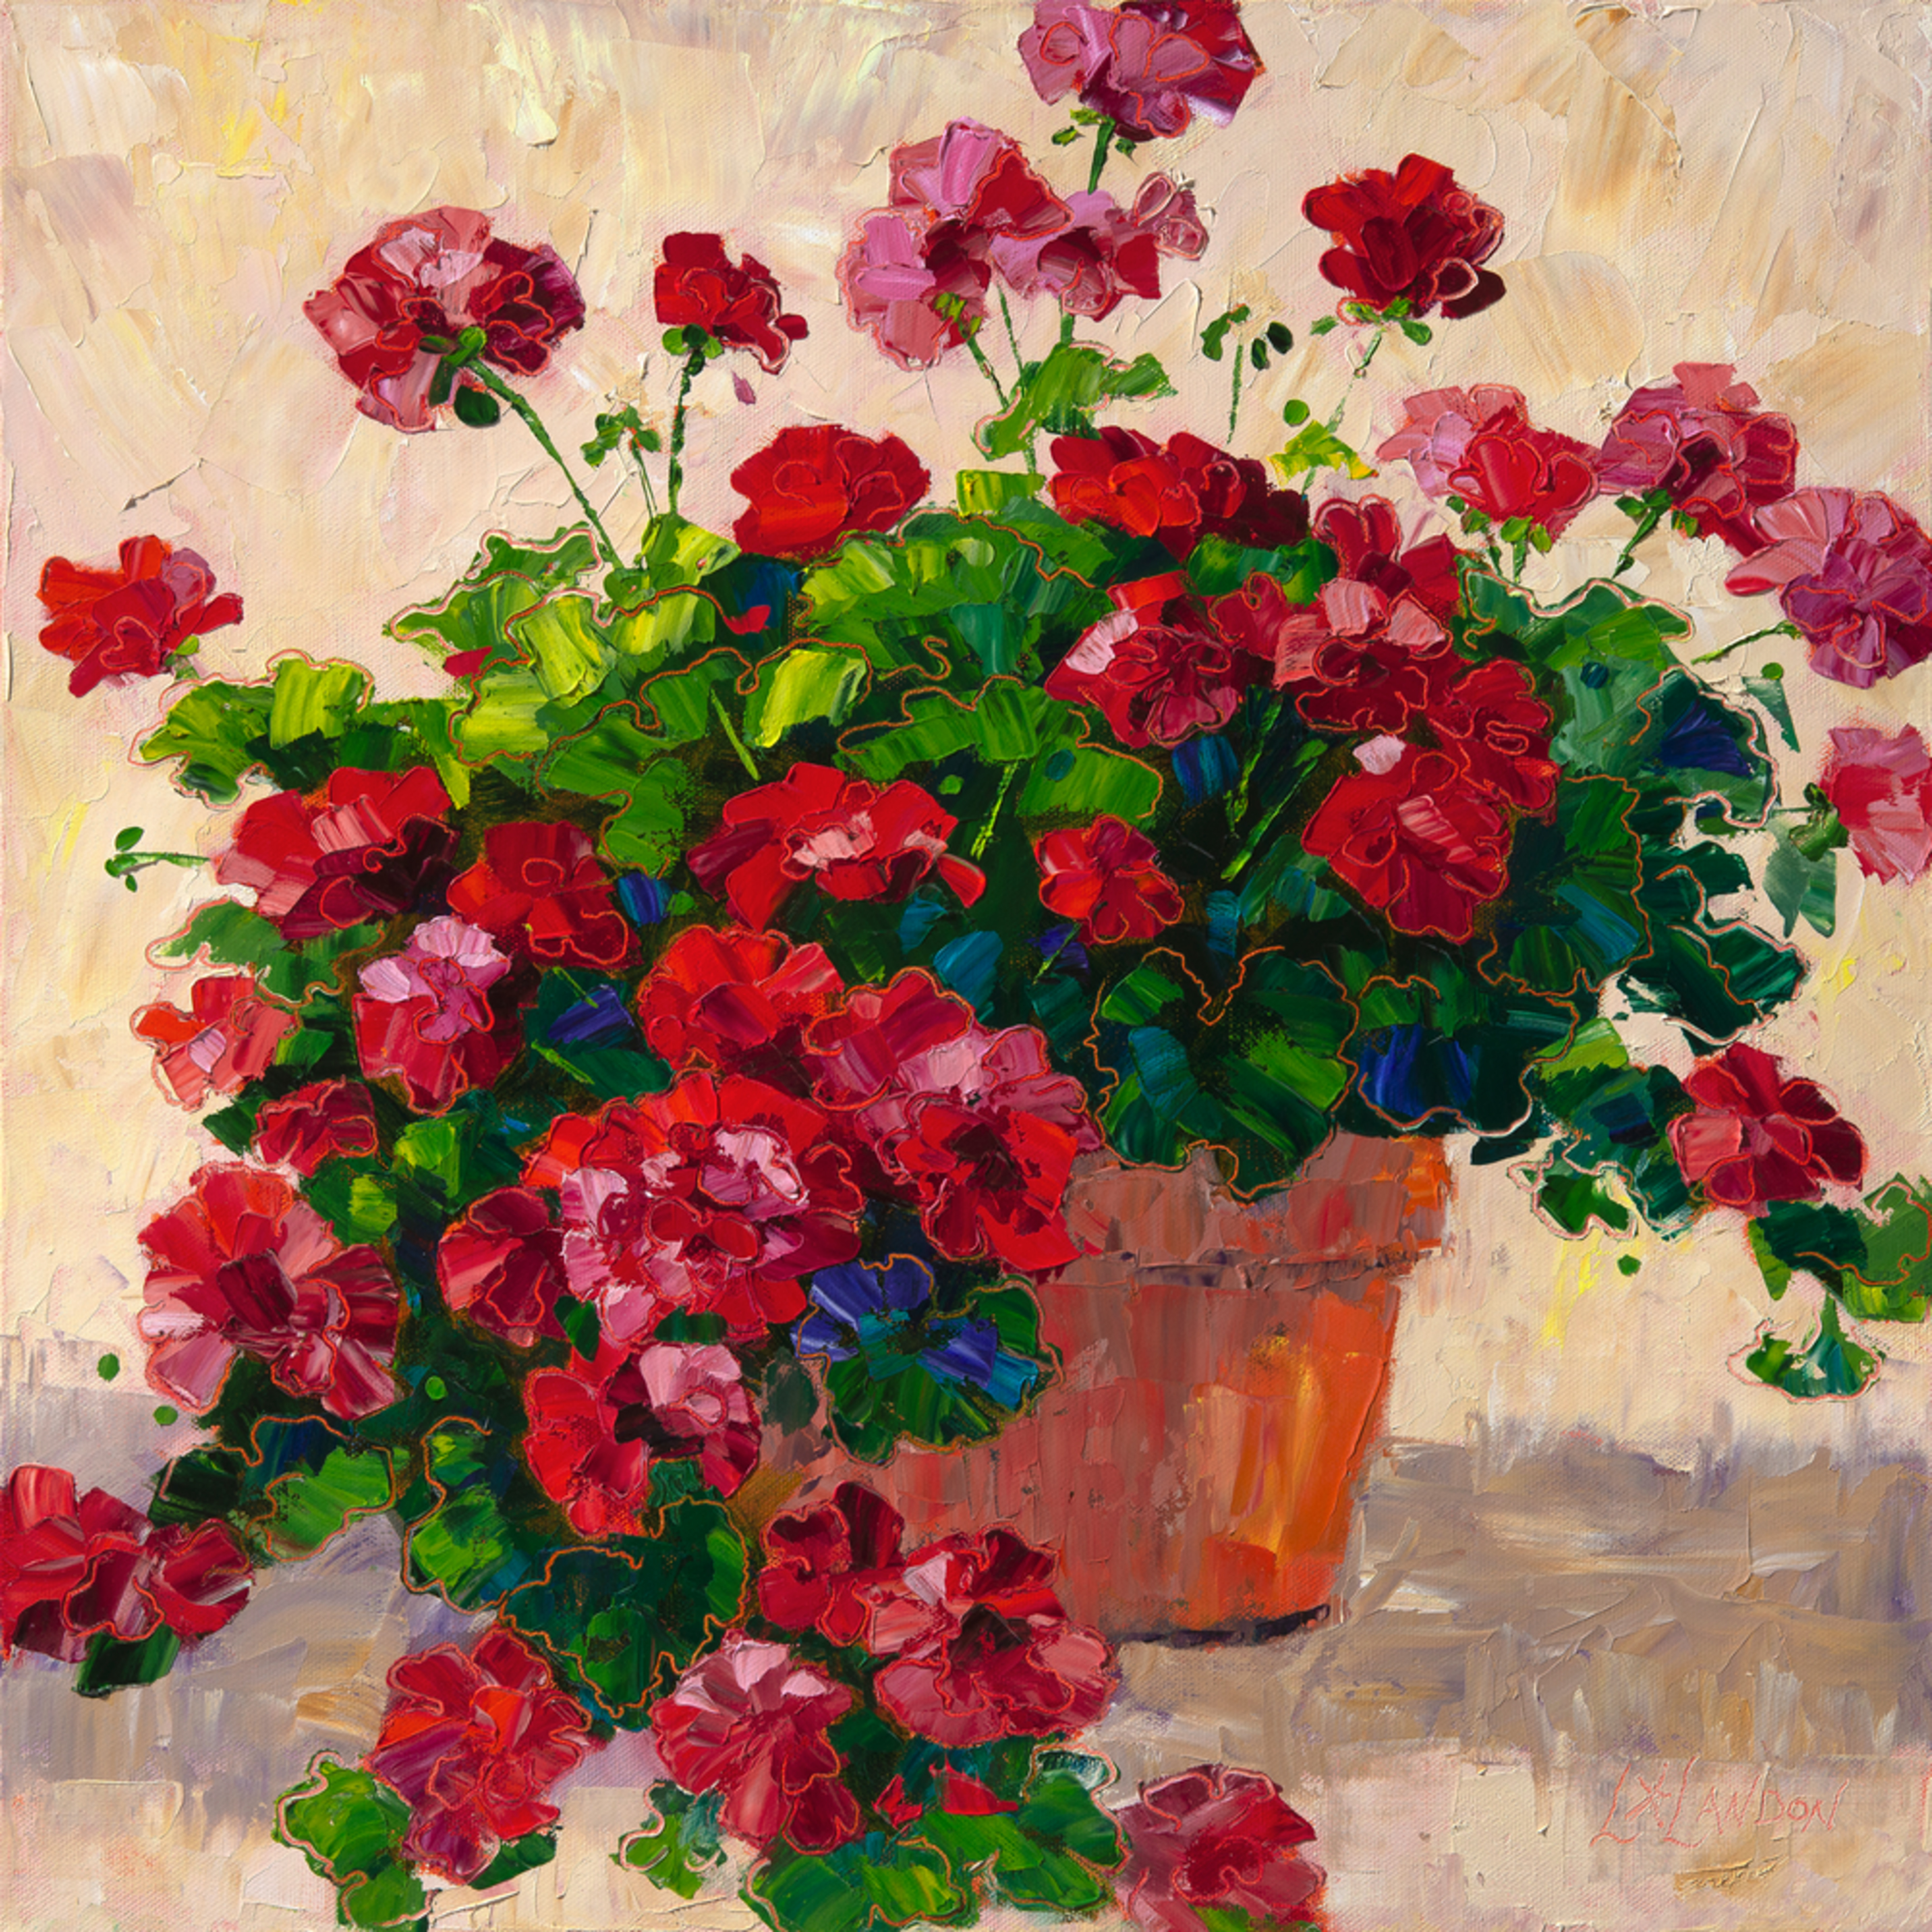 Theres just something about red geraniums in a terra cotta pot   original size   20 x 20 tteqoa